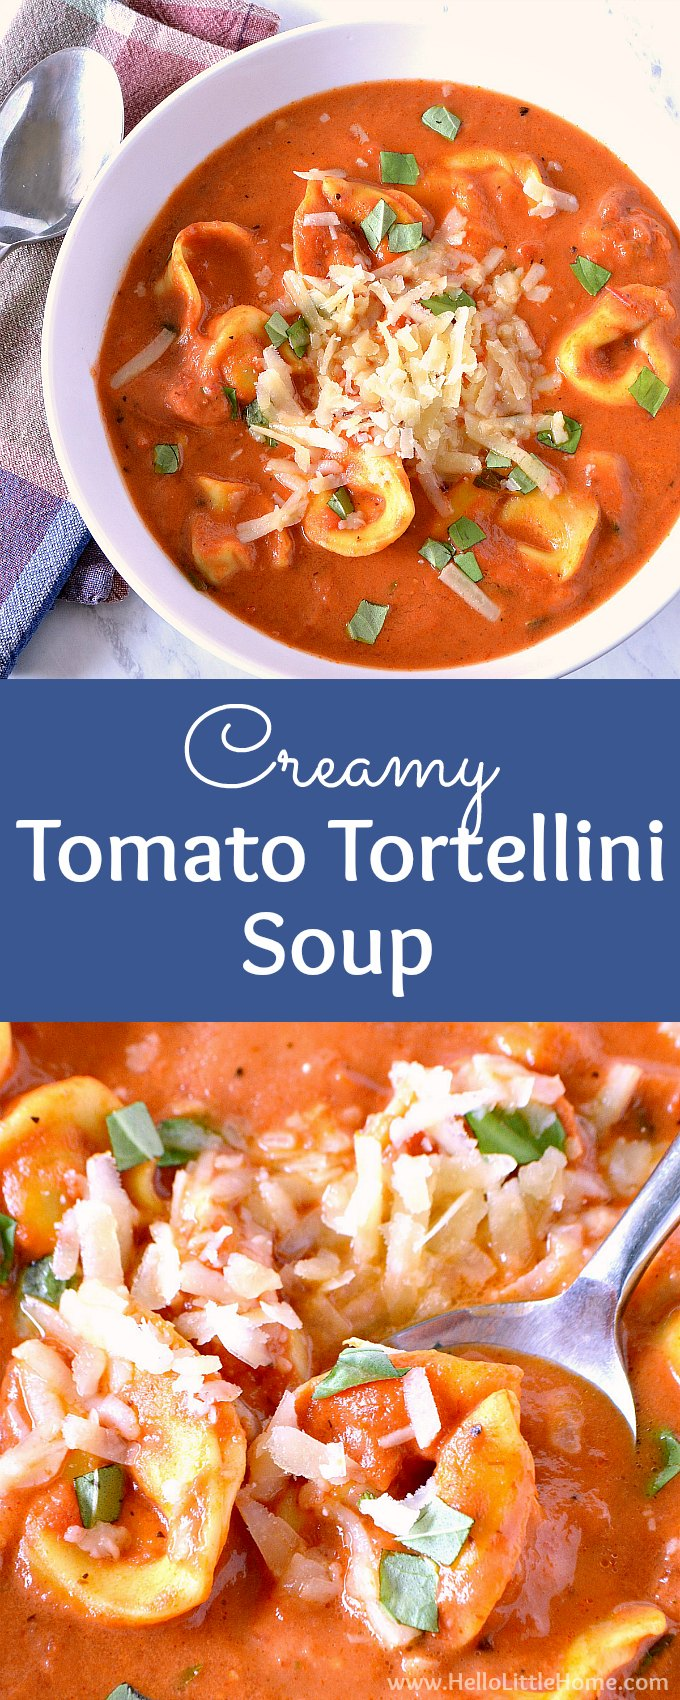 Creamy Tomato Tortellini Soup Recipe! This easy vegetarian tortellini soup is a one pot recipe with a garlic, basil, and tomato base paired with tasty cheese tortellini. Great for families, winter dinners, lunches + parties, this homemade tomato tortellini soup is total comfort food. An Italian inspired tortellini soup, this simple, meatless recipe is ready fast and is super cheesy! | Hello Little Home